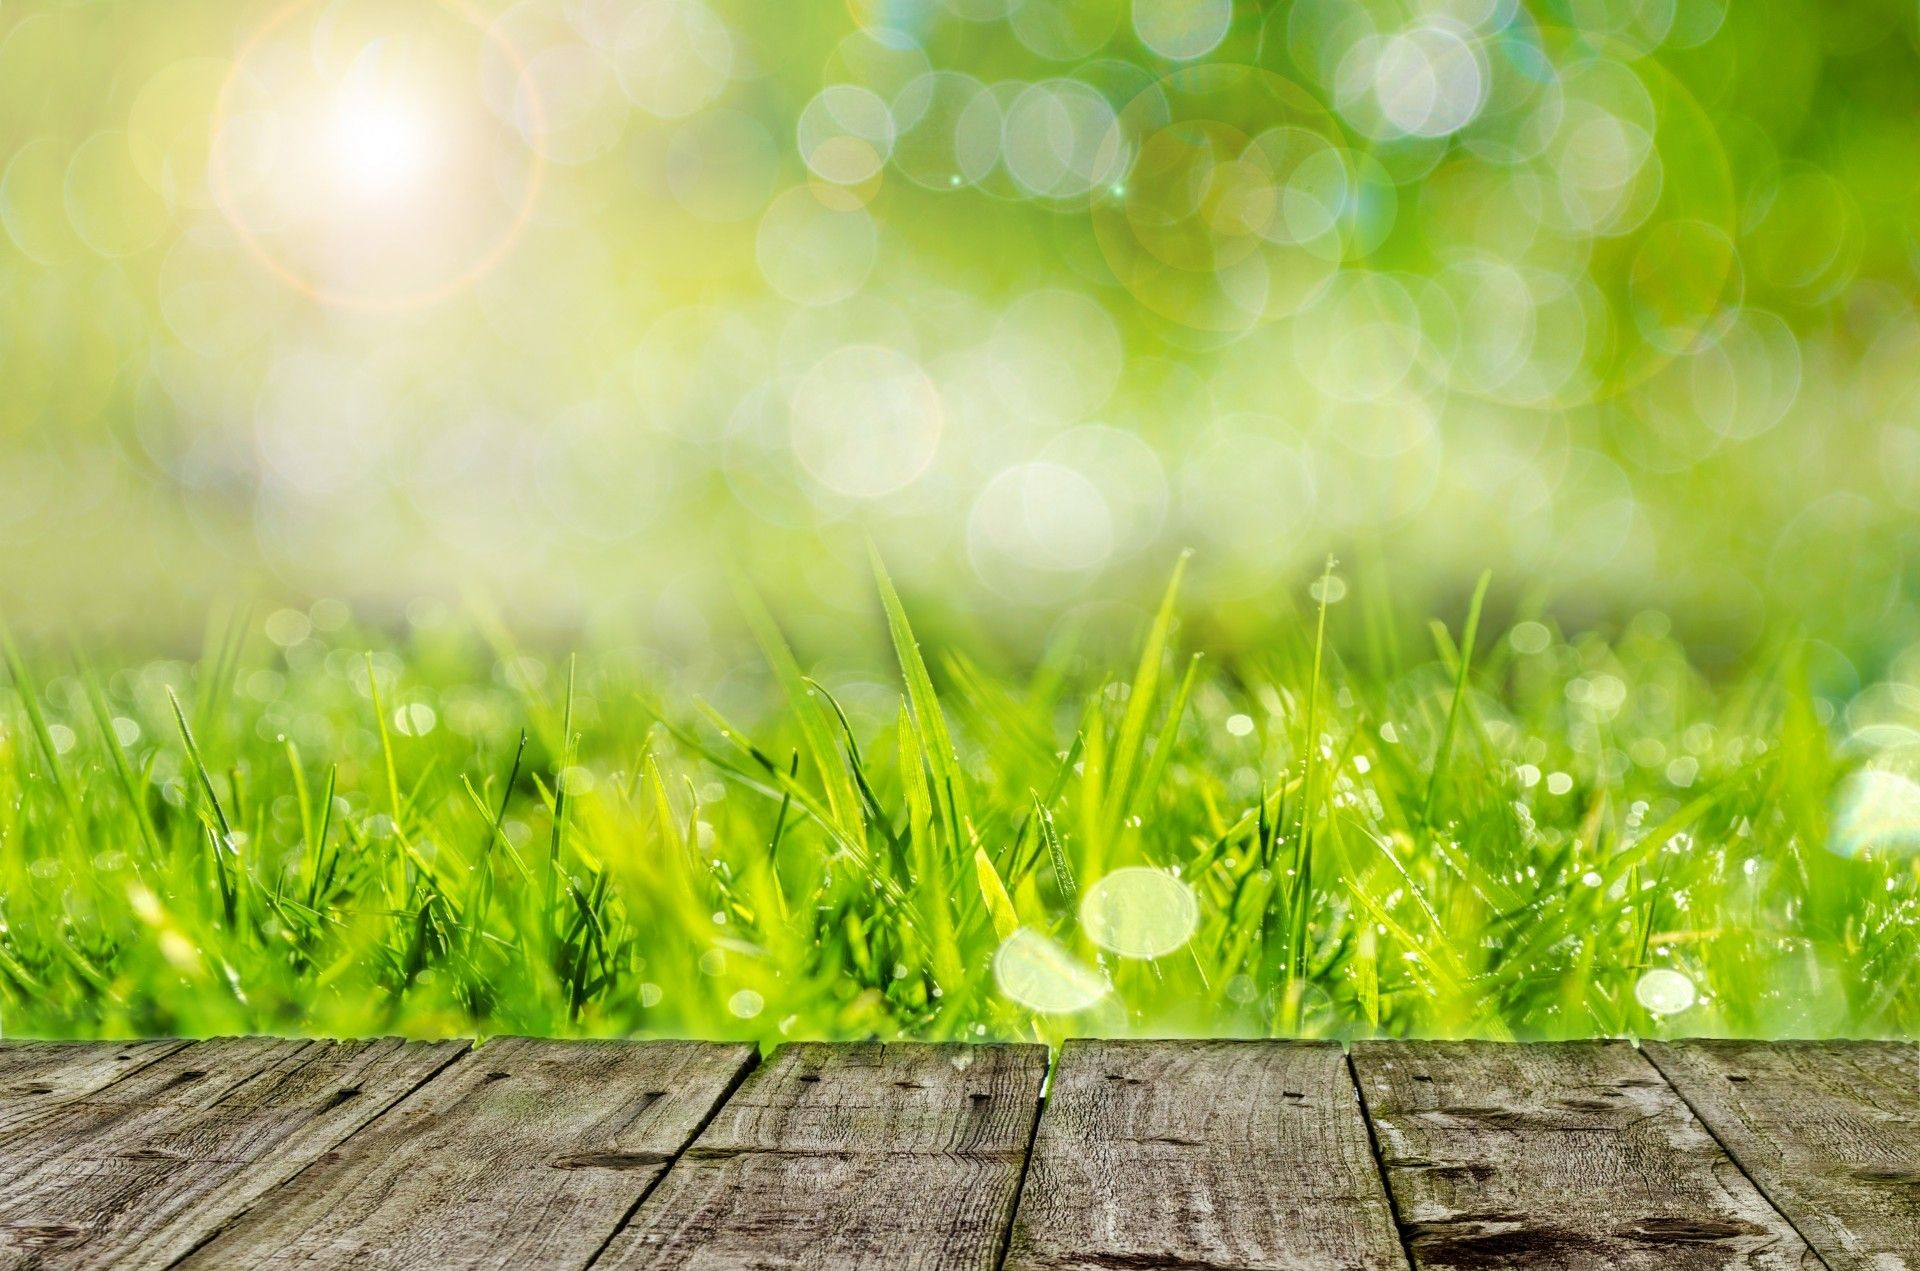 Wooden Table In The Garden Wonderful Green Grass Spring Wallpapers Seasons Wallpapers Download Beautiful Hd Wallpaper 1080p Lawn And Garden Lawn Care Lawn